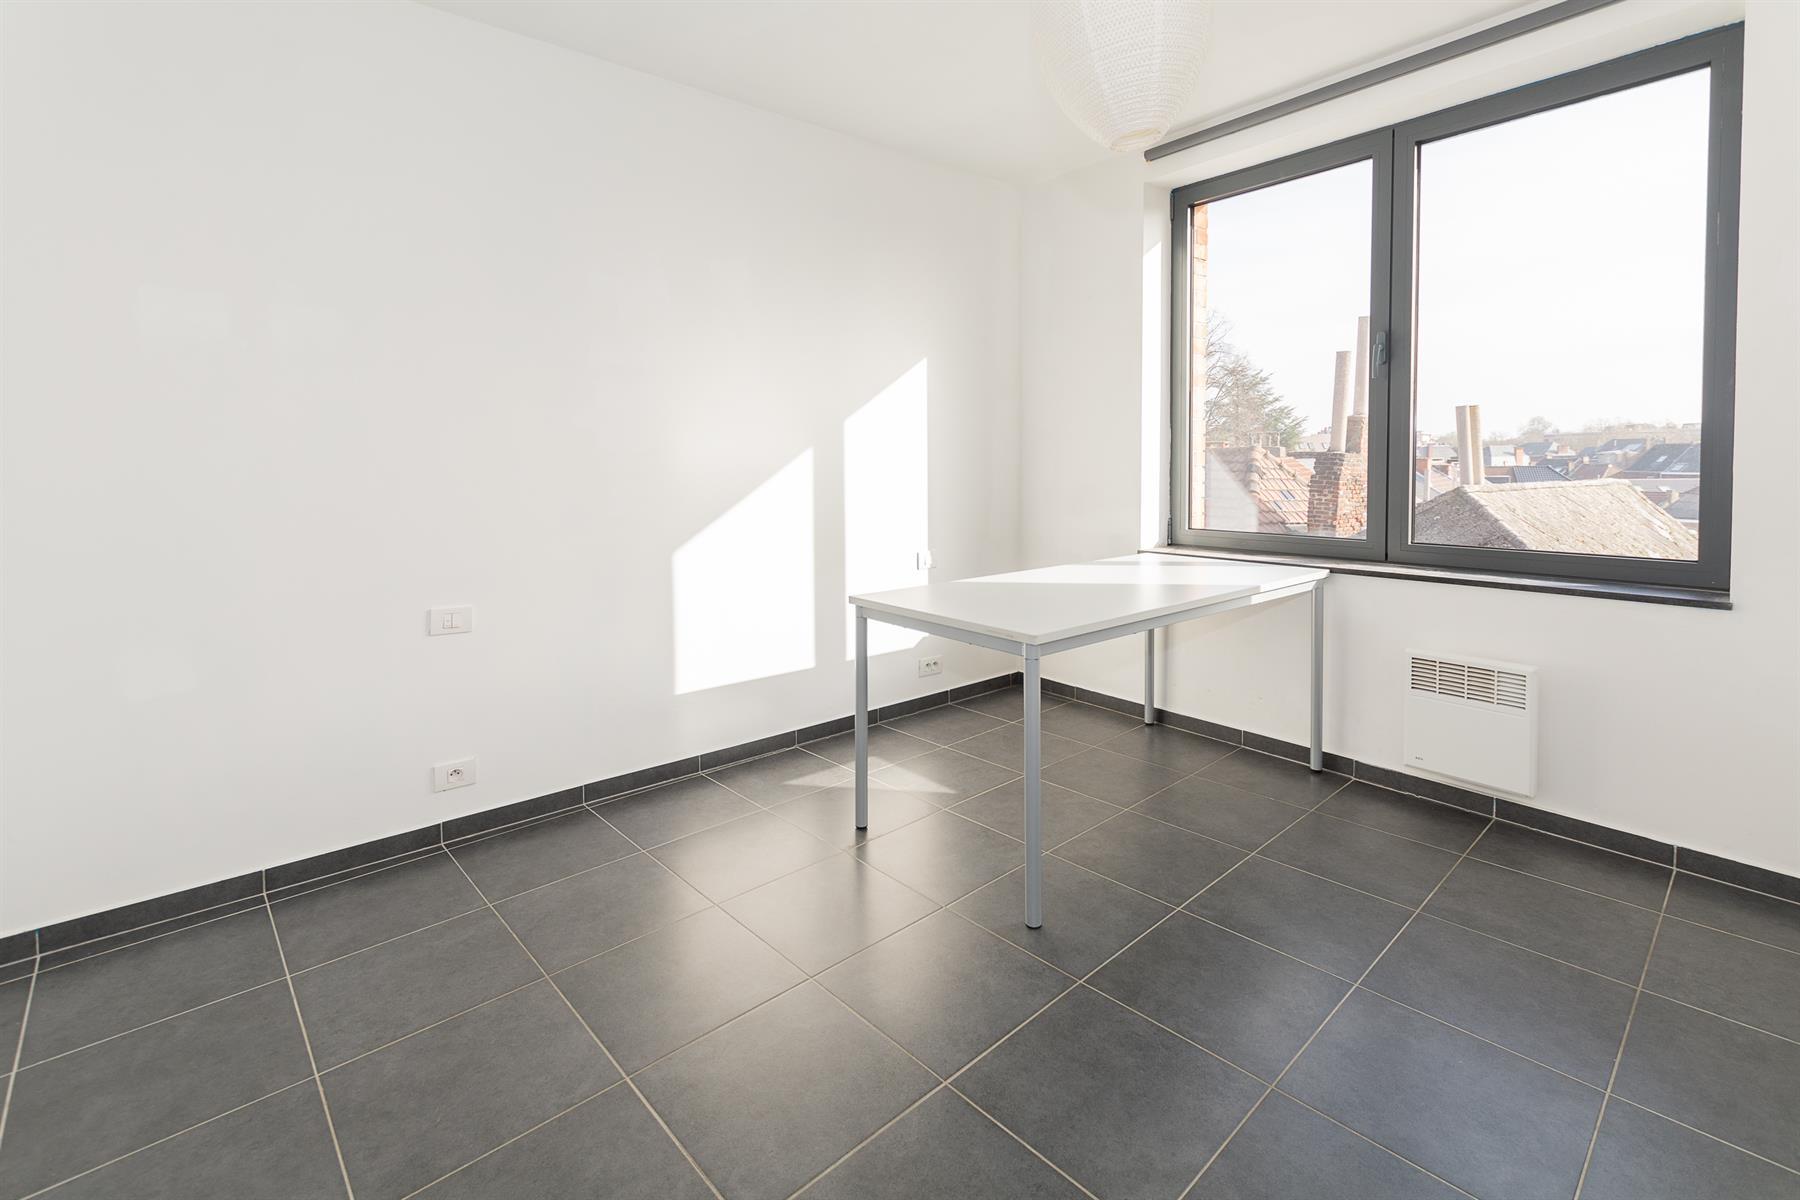 Appartement - Mons - #4291458-10